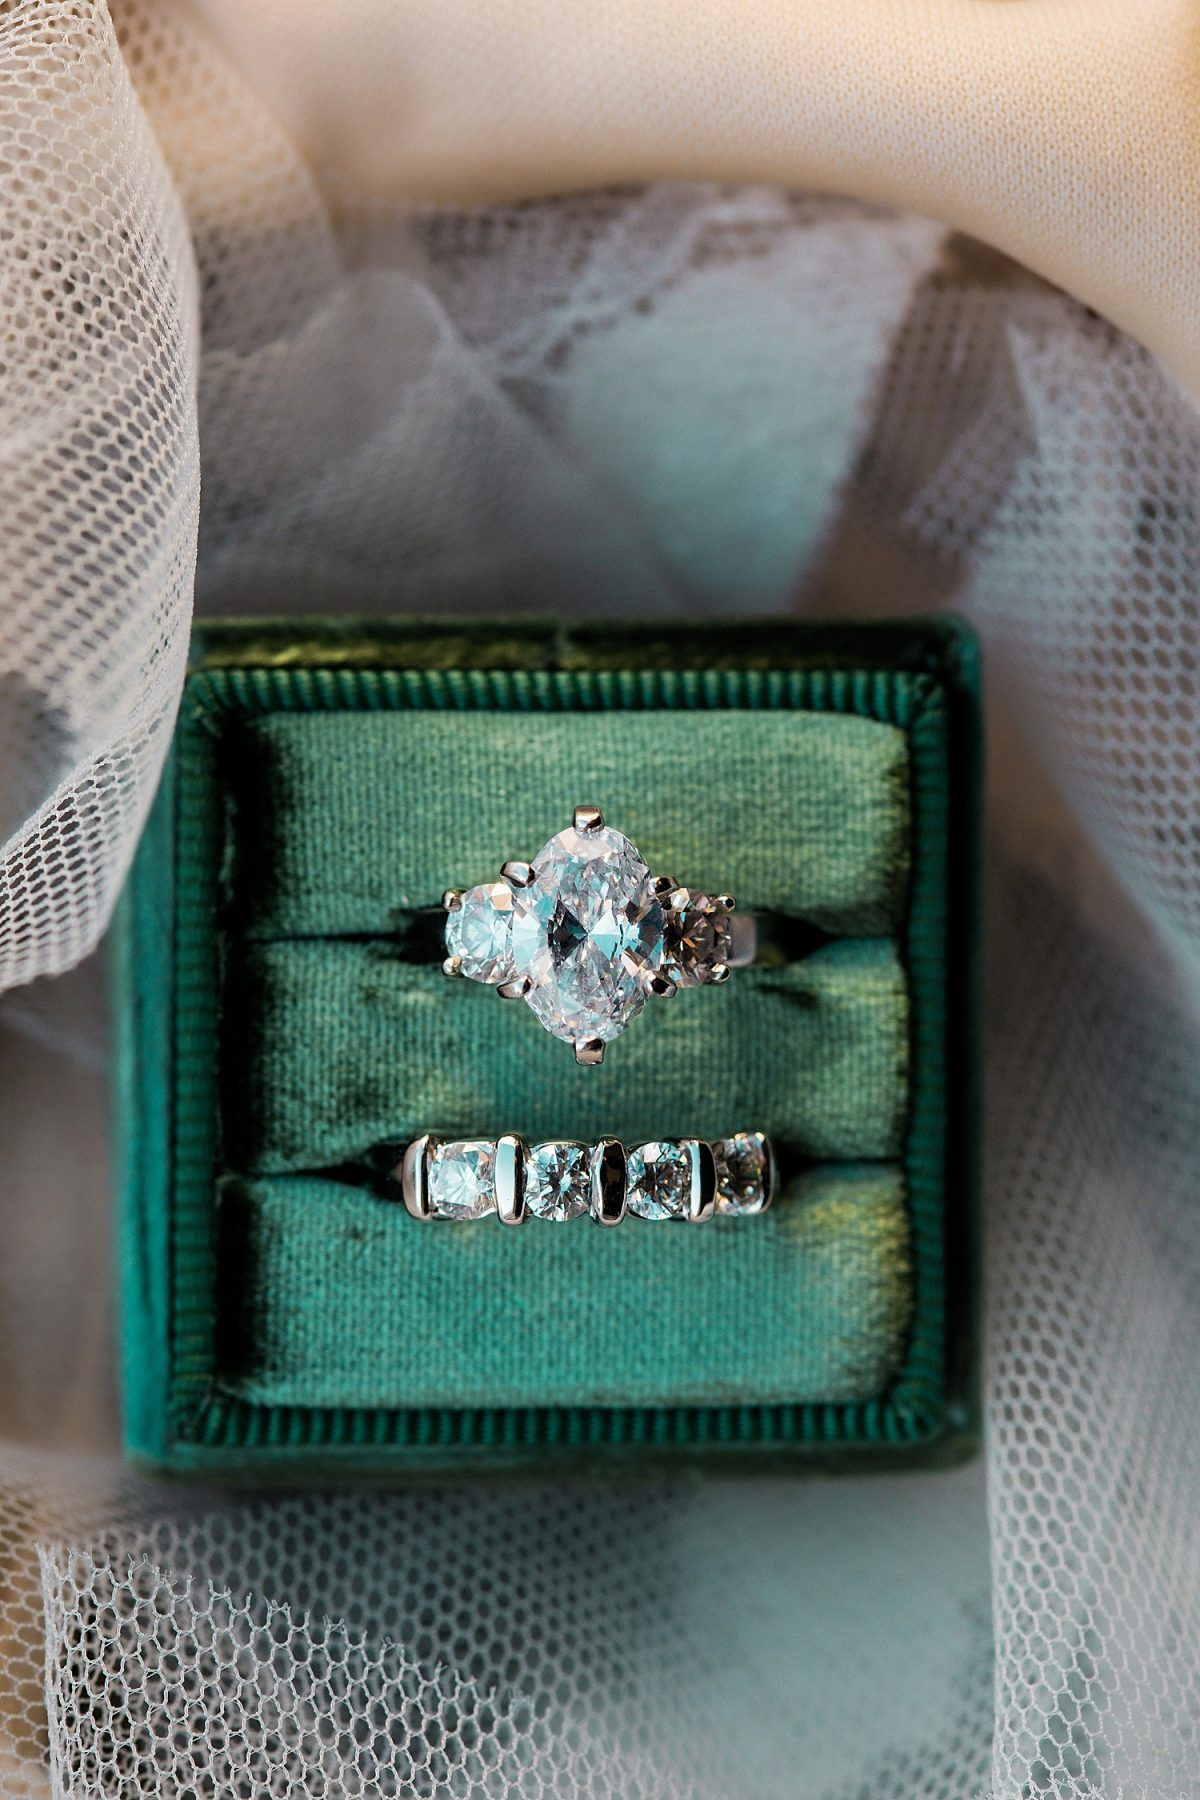 Inspiration Pittsburgh Wedding Ideas From Burgh Brides In 2020 Pittsburgh Weddings Gorgeous Wedding Rings Wedding Rings Engagement